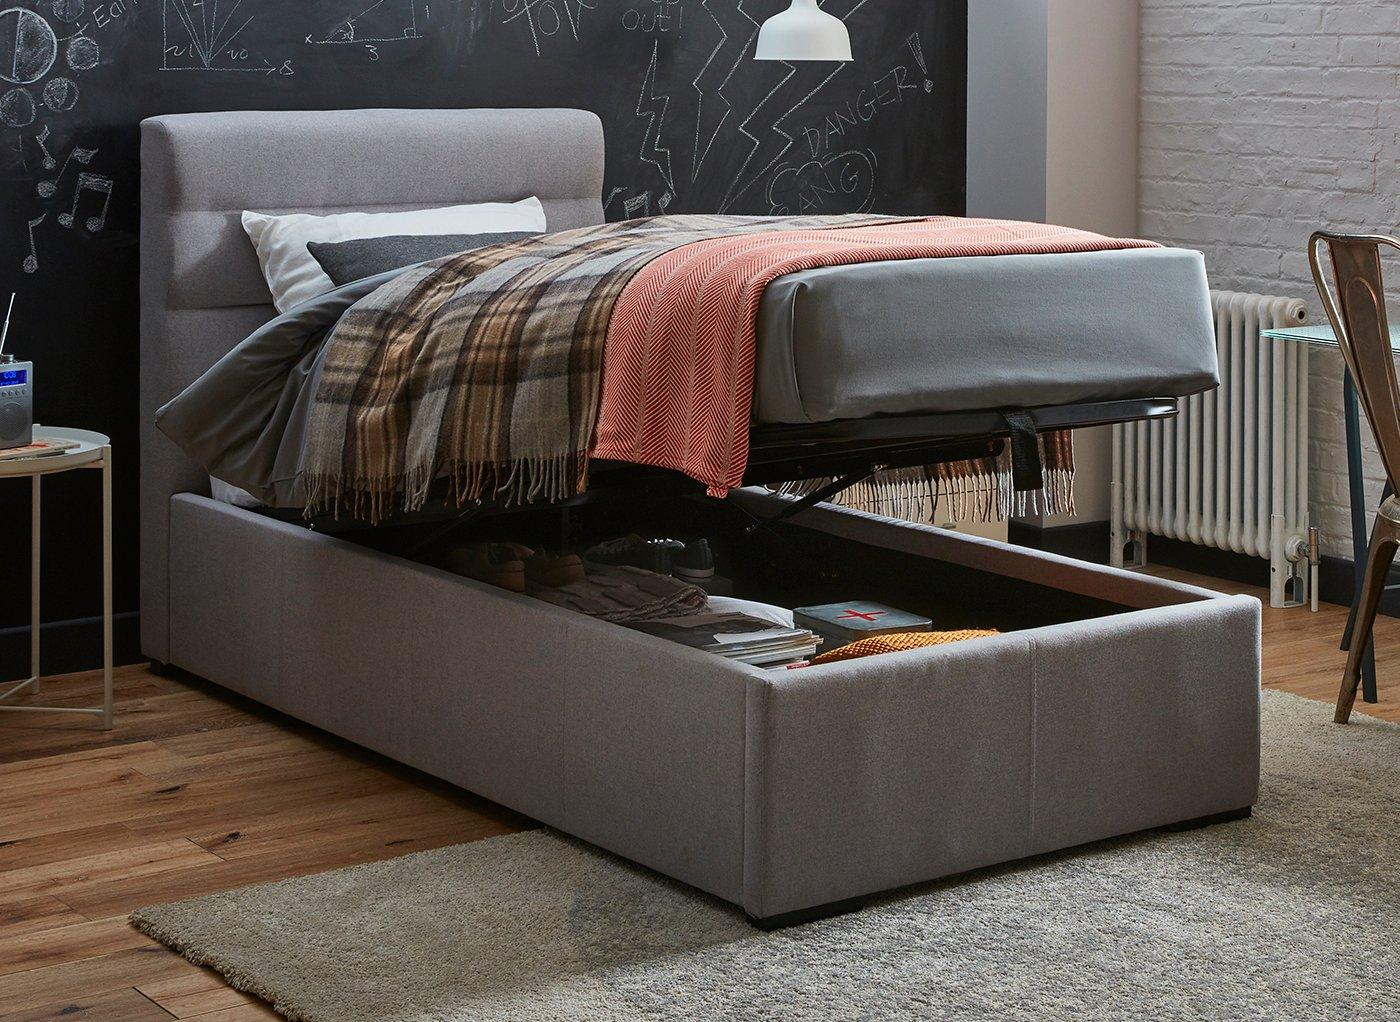 Picture of: Dawson Single Ottoman Sound System Bed Tv Tech Beds Beds Dreams